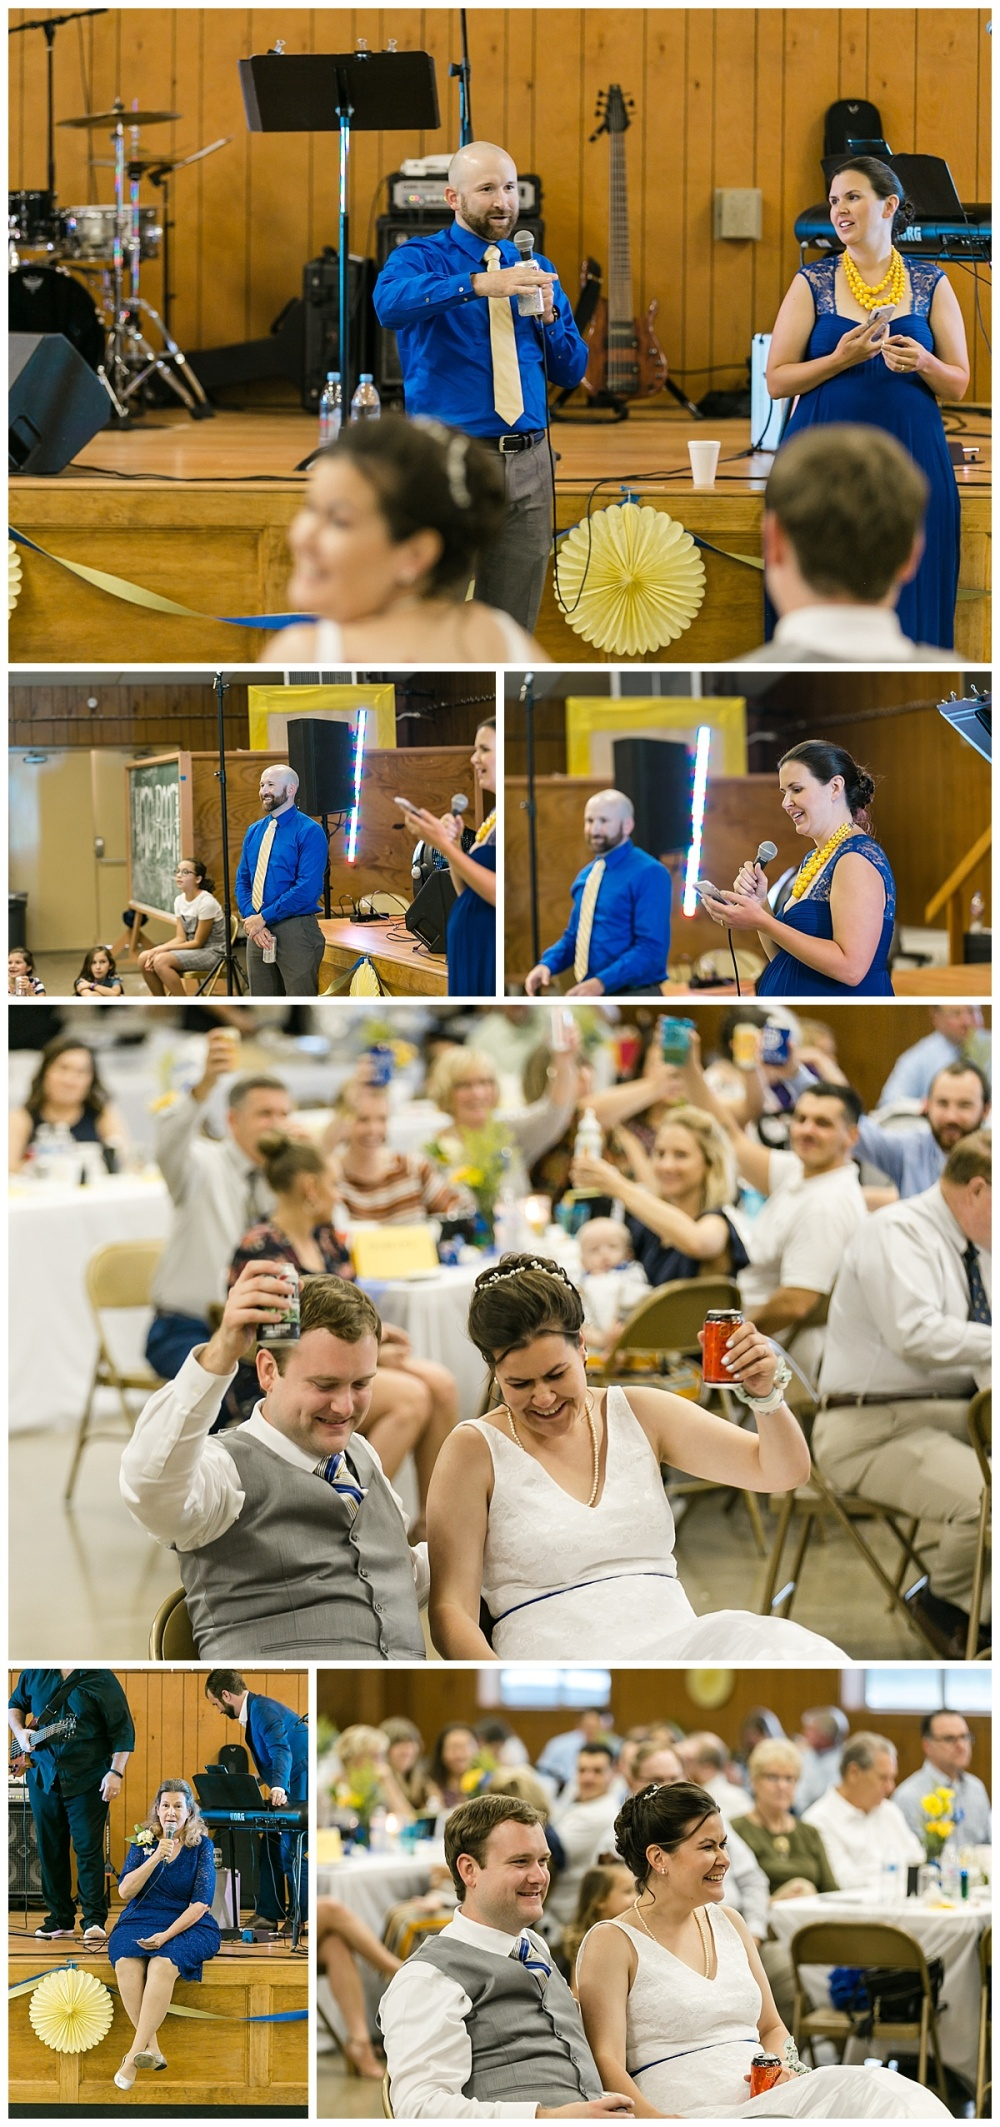 Texas-Wedding-Photographer-La-Coste-Our-Lady-Of-Grace-Church-Bride-Groom-Lego-Theme-Carly-Barton-Photography_0070.jpg